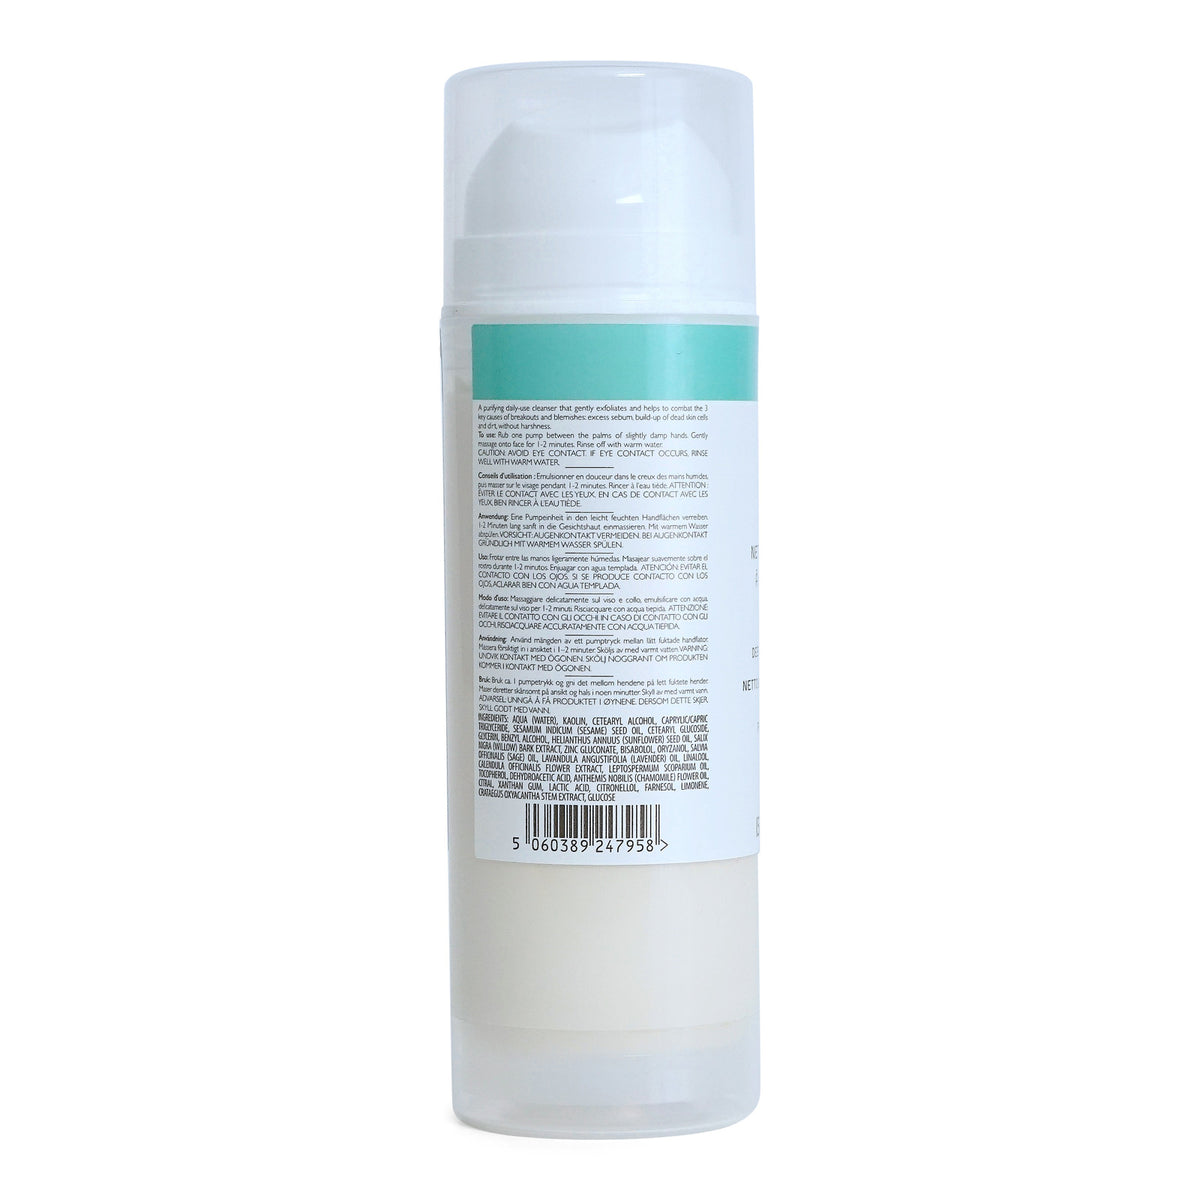 REN Skincare Clear Calm 3 Clarifying Clay Cleanser - minimizes blemishes, pores and redness (150 ml / 5.1 fl. Oz.) (3/cs)